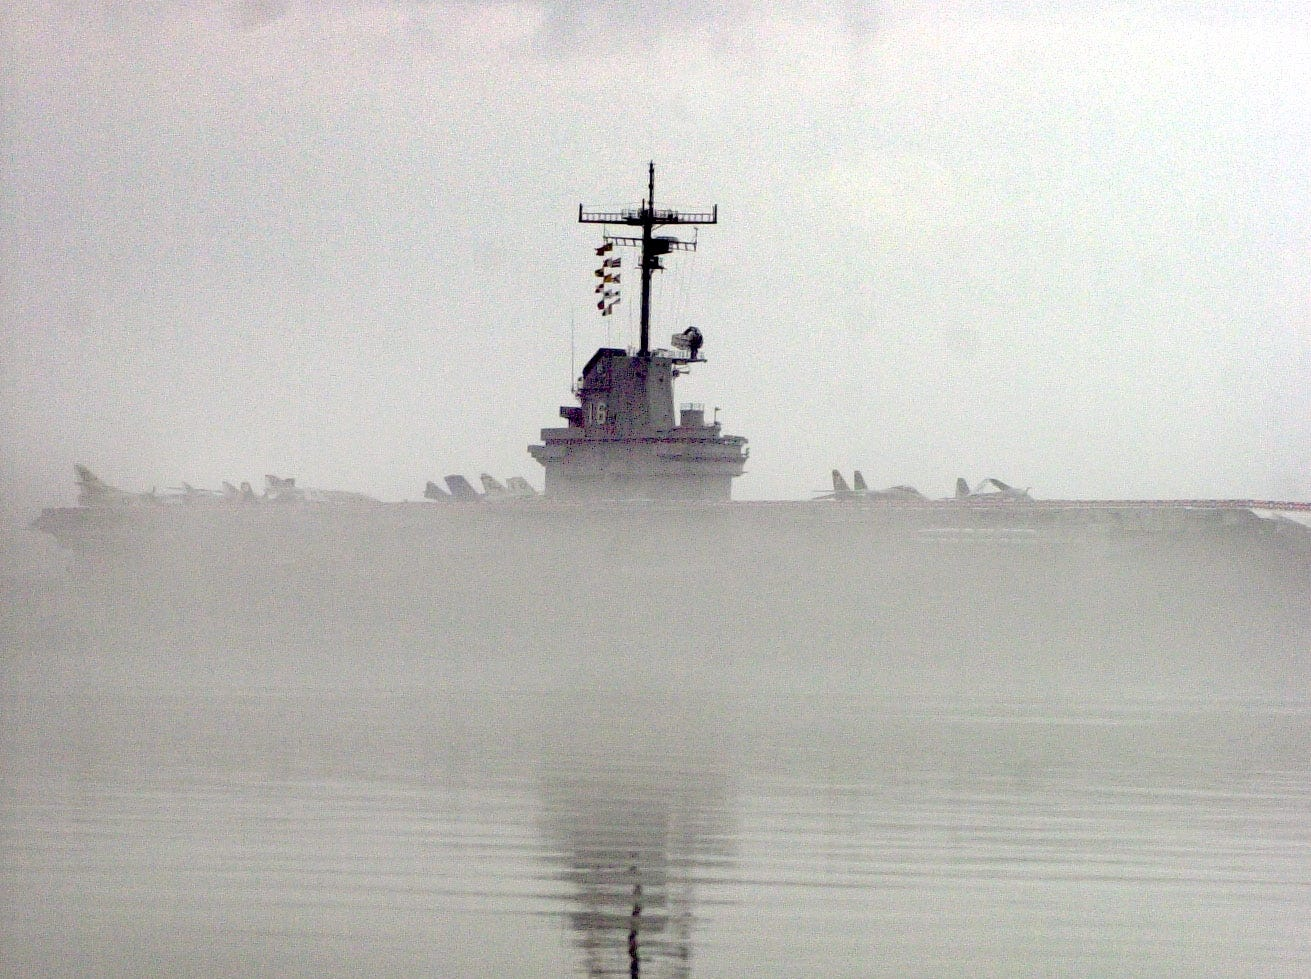 As the fog rolls in on Corpus Christi Bay it washes over the U.S.S. Lexington, leaving only the top of the ship visible Wednesday morning, Dec. 14, 2005.